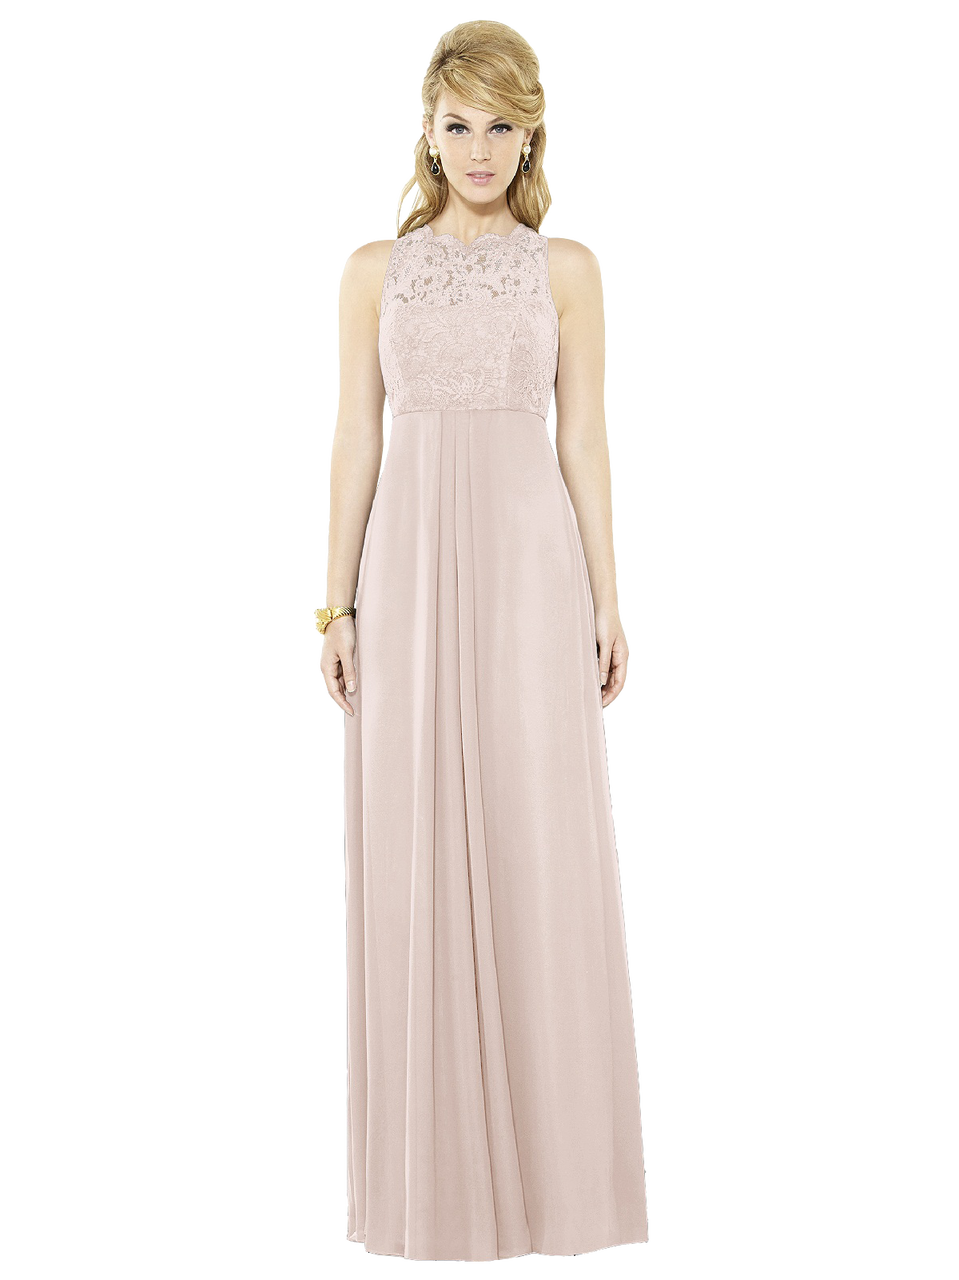 After six 6722 bridals by lori this after six style 6722 bridesmaid dress is one of bridals by loris best selling bridesmaid ombrellifo Image collections